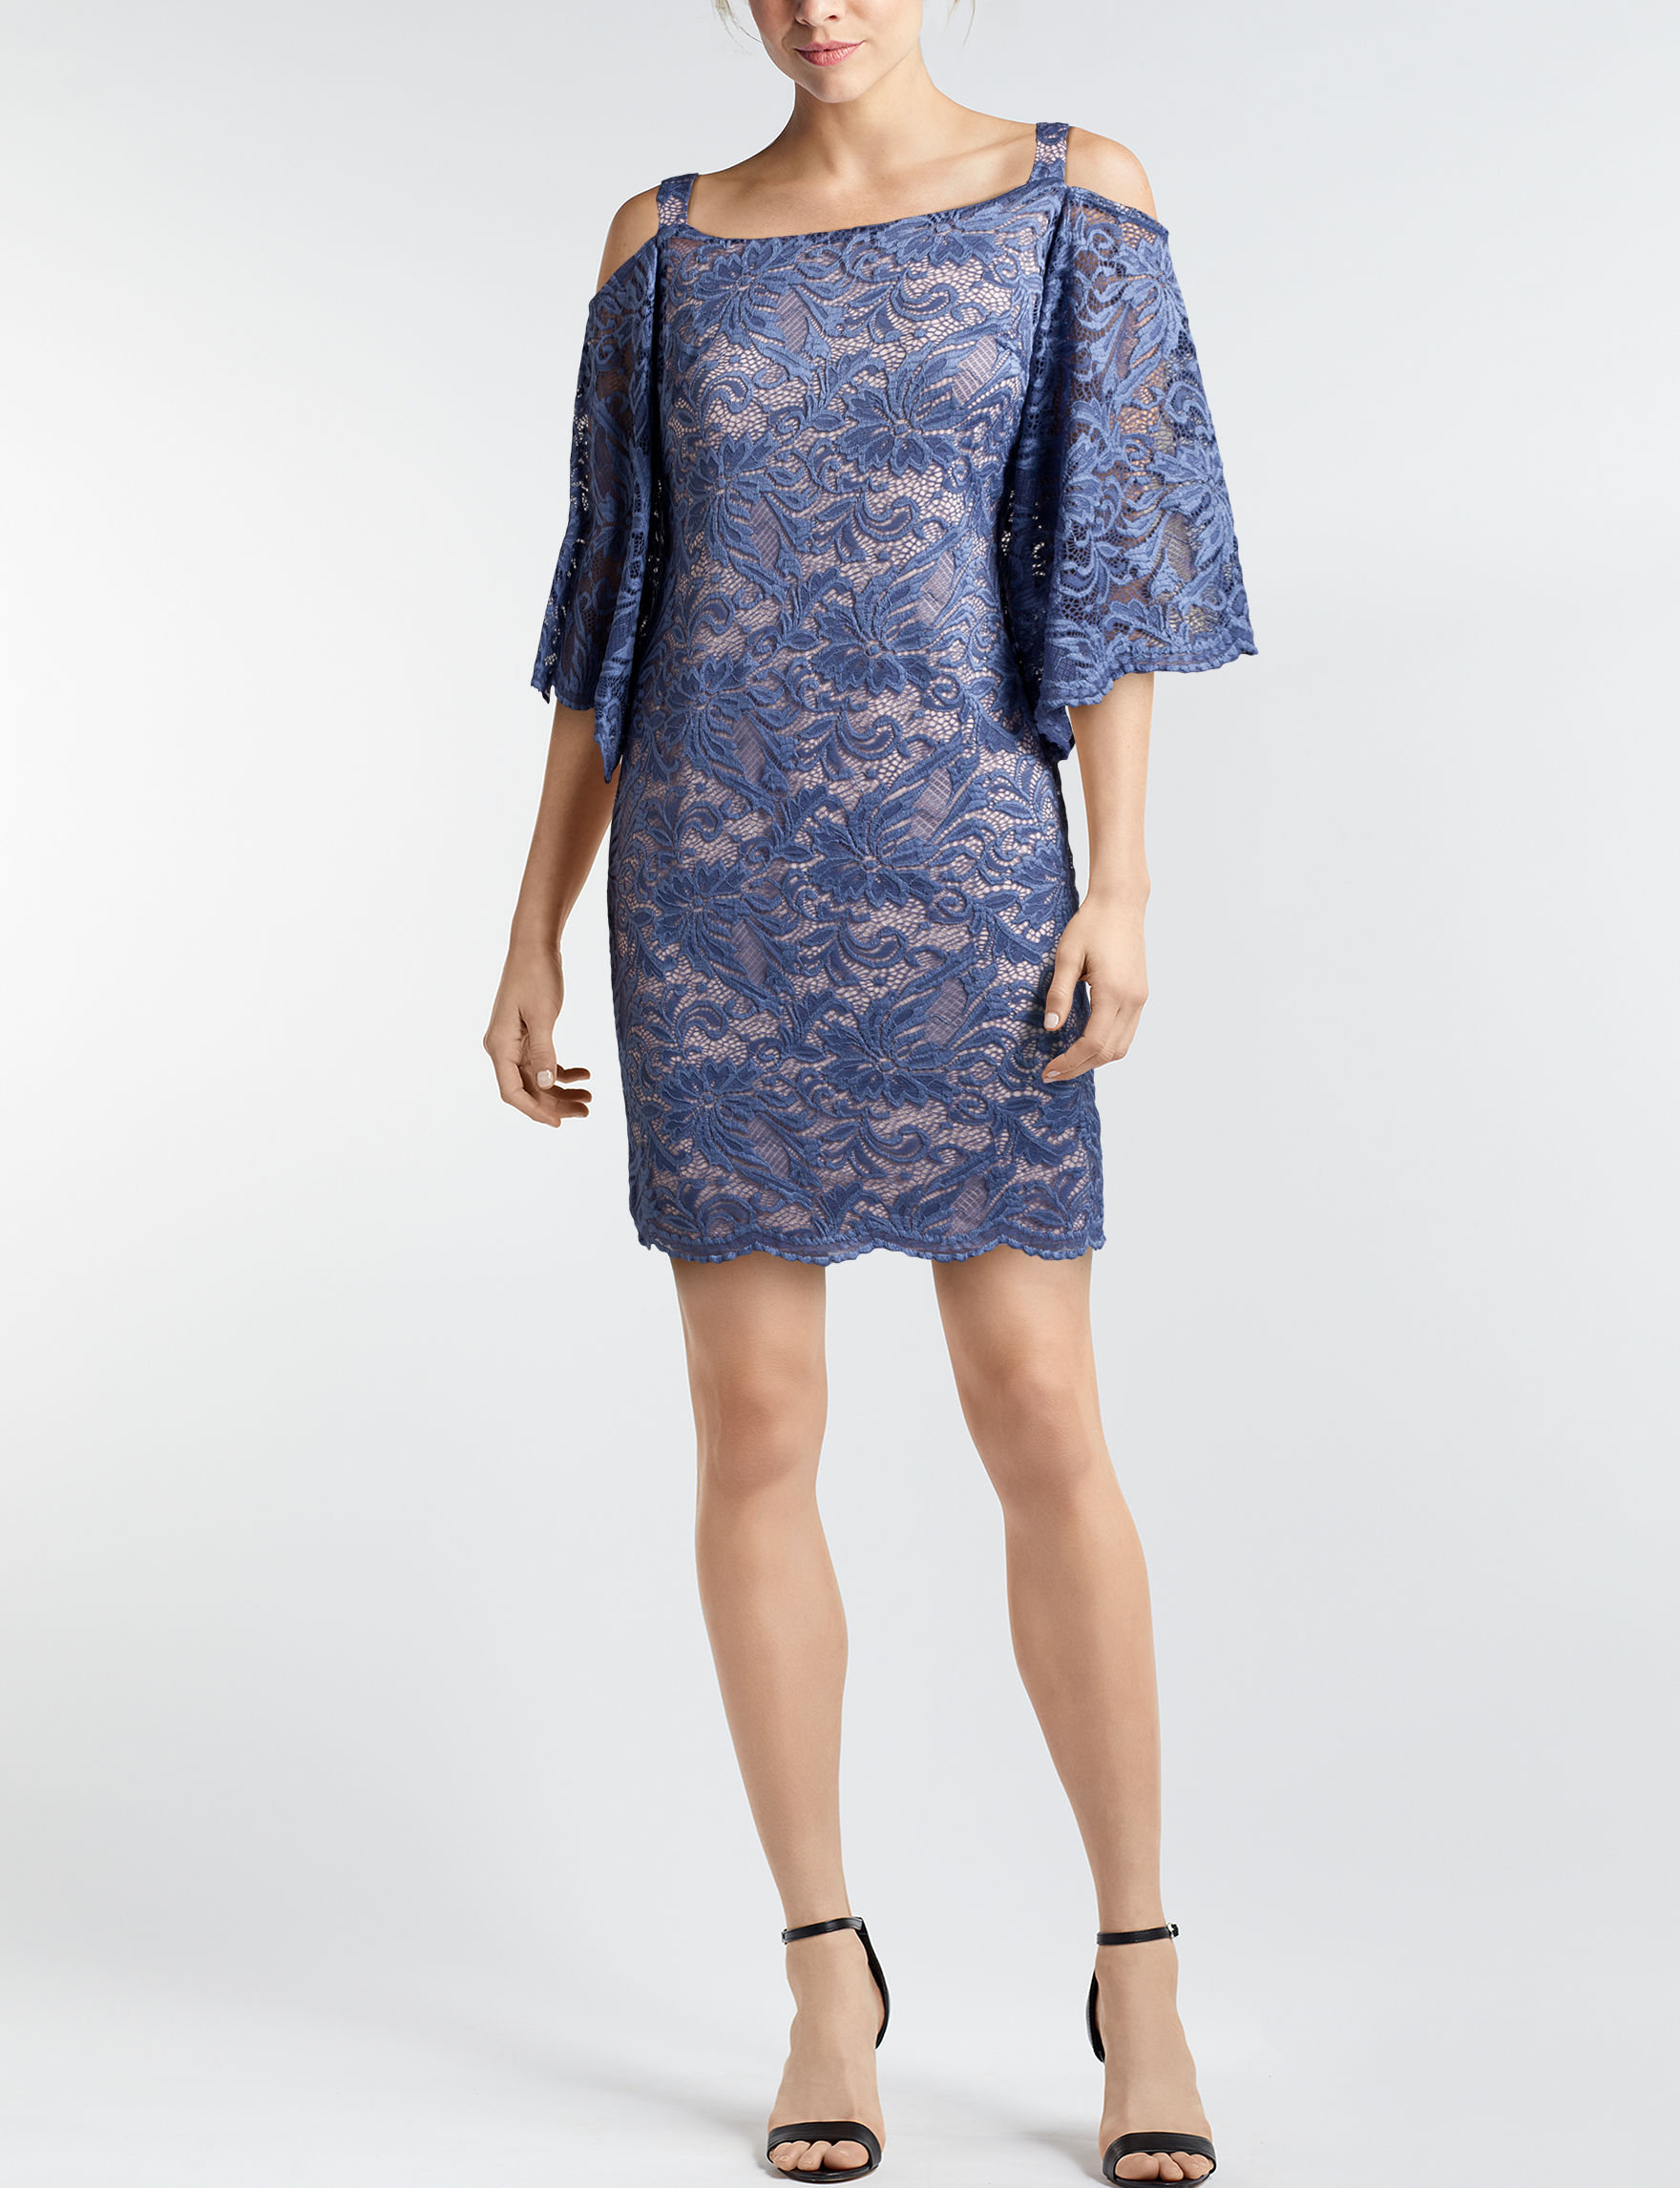 Robbie Bee Blue Shift Dresses